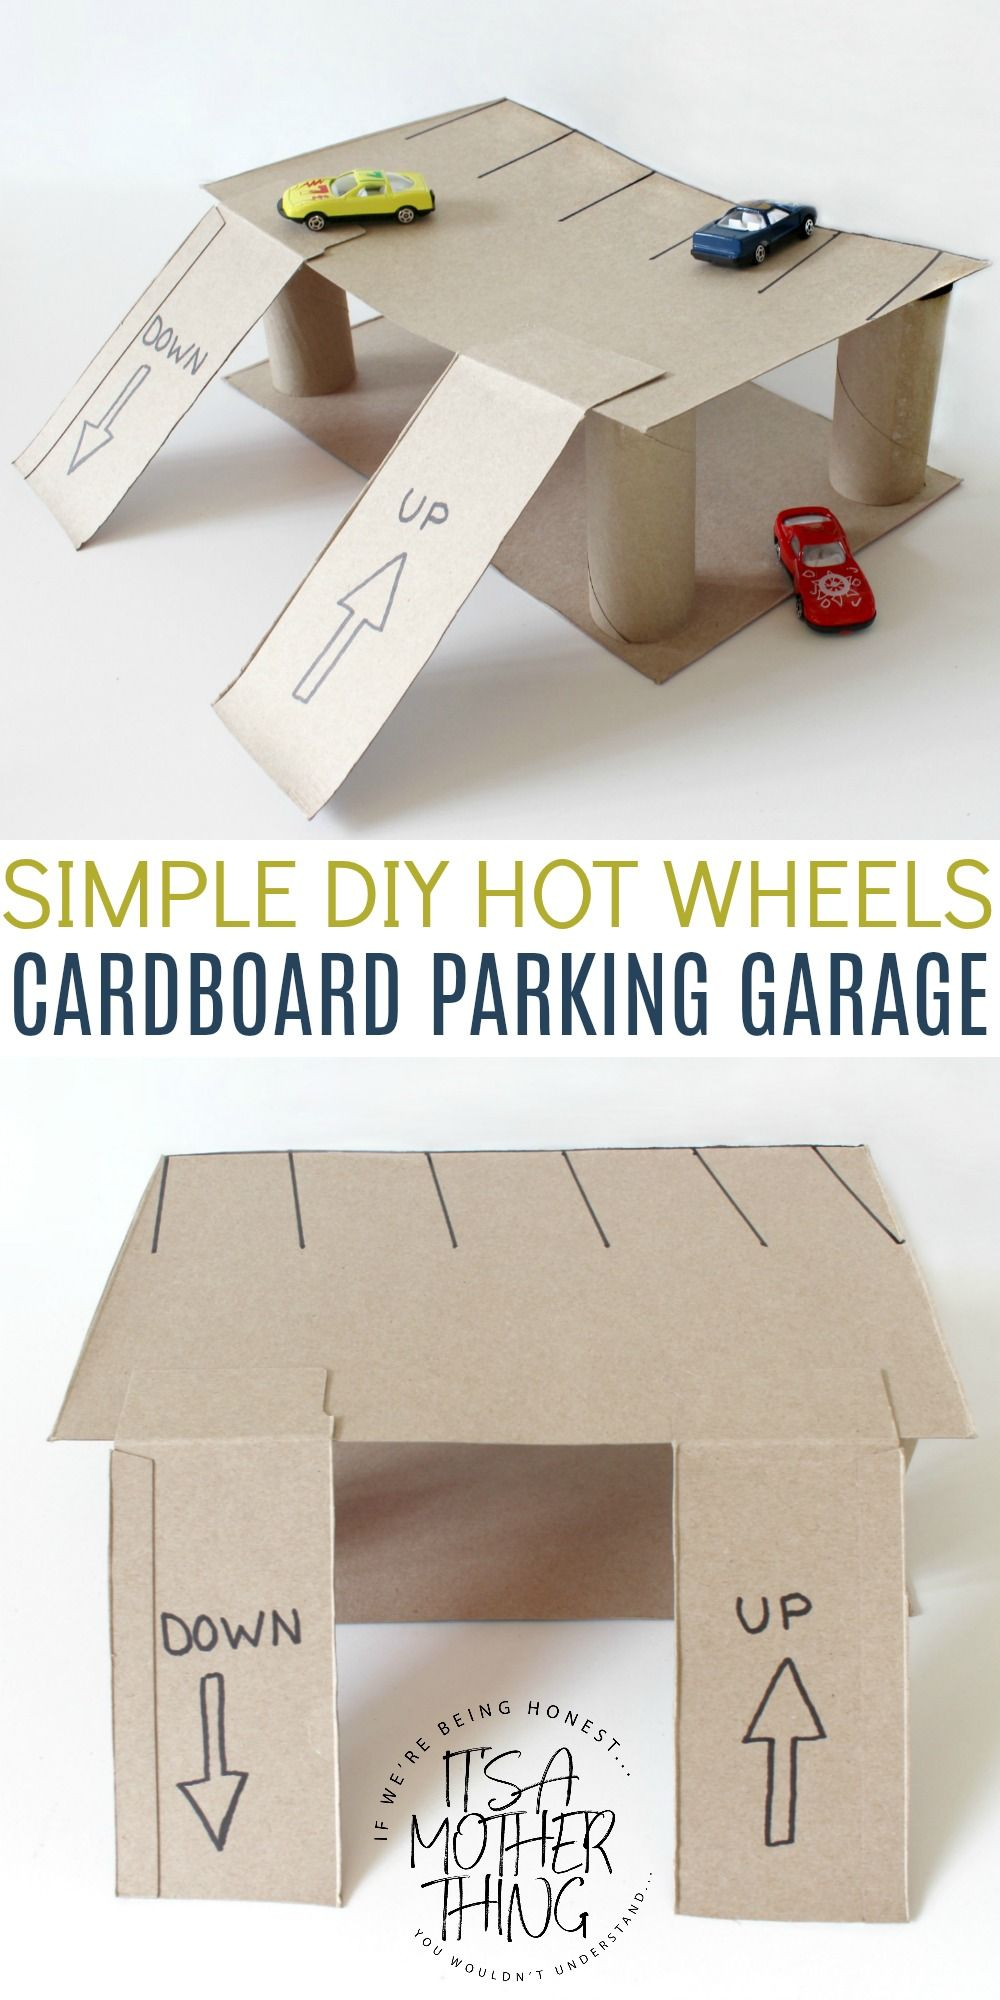 Simple Diy Toy Car Cardboard Parking Garage Cardboard Creations